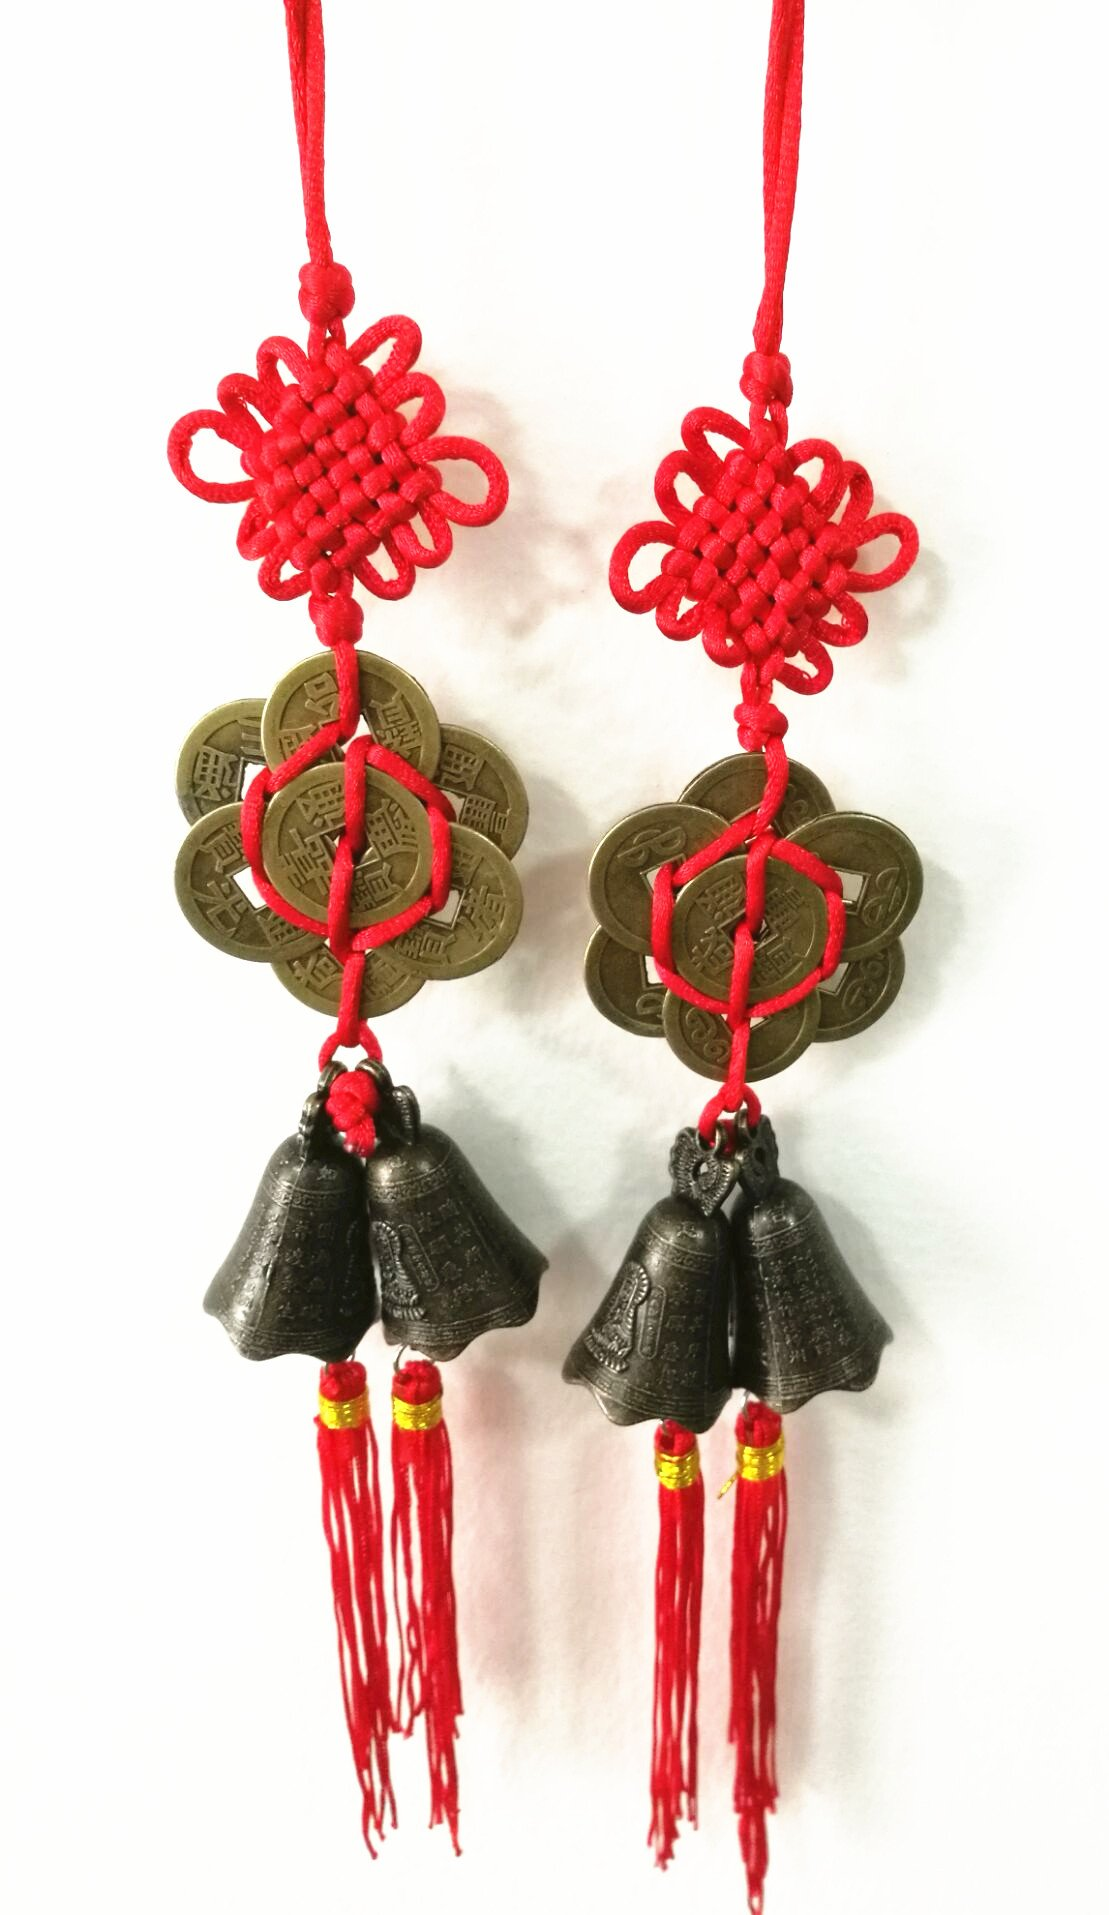 Buy TtoyouU Chinese Feng Shui 5 Lucky Coins Hanger to